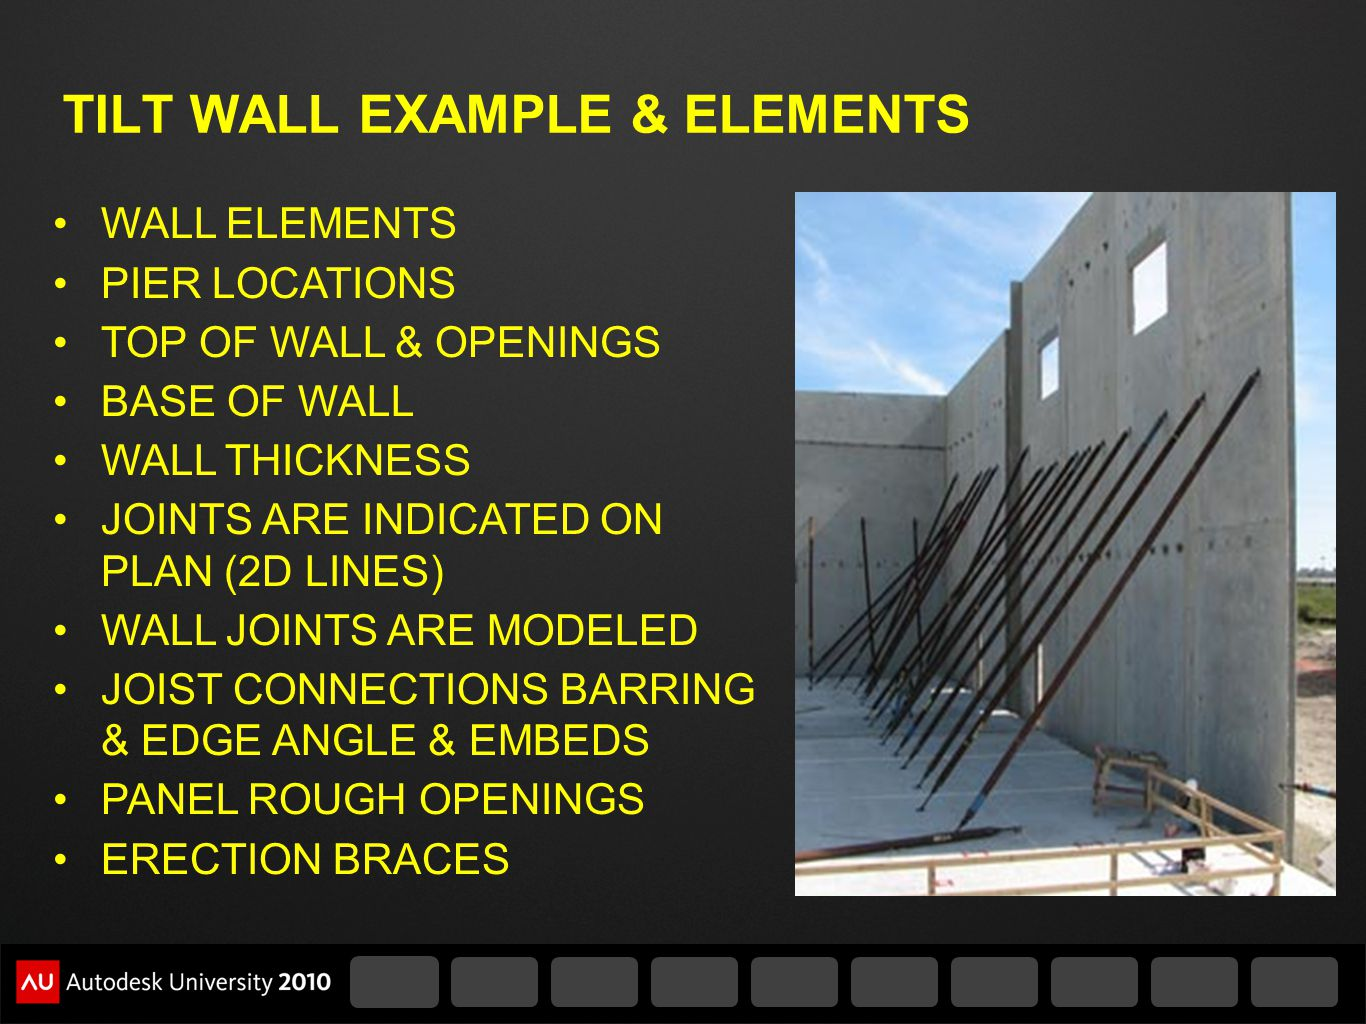 TILT WALL EXAMPLE & ELEMENTS WALL ELEMENTS PIER LOCATIONS TOP OF WALL & OPENINGS BASE OF WALL WALL THICKNESS JOINTS ARE INDICATED ON PLAN (2D LINES) W